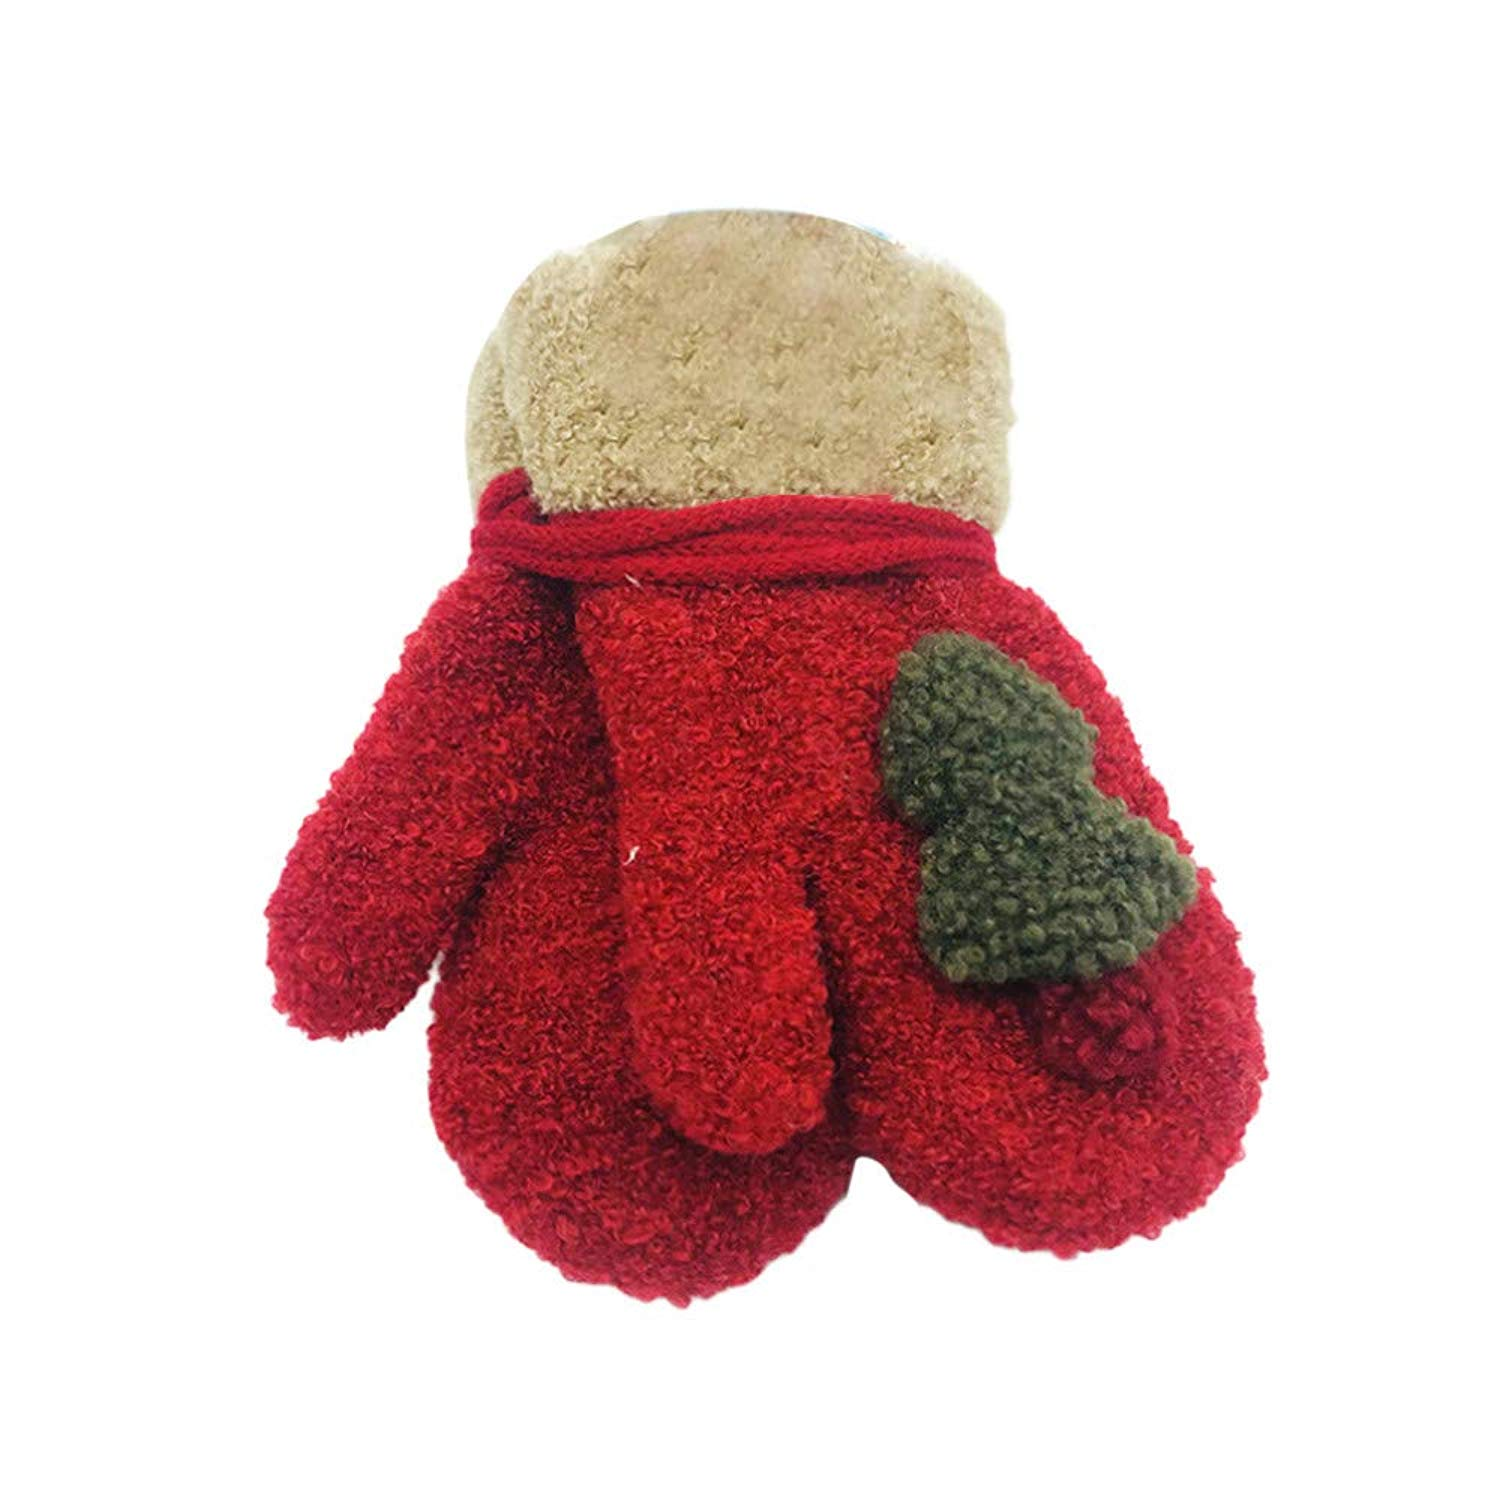 Toddler Child Winter Knitted Gloves Christmas Tree Ornament Boys Girls Cute Warm Gloves Xmas Gift